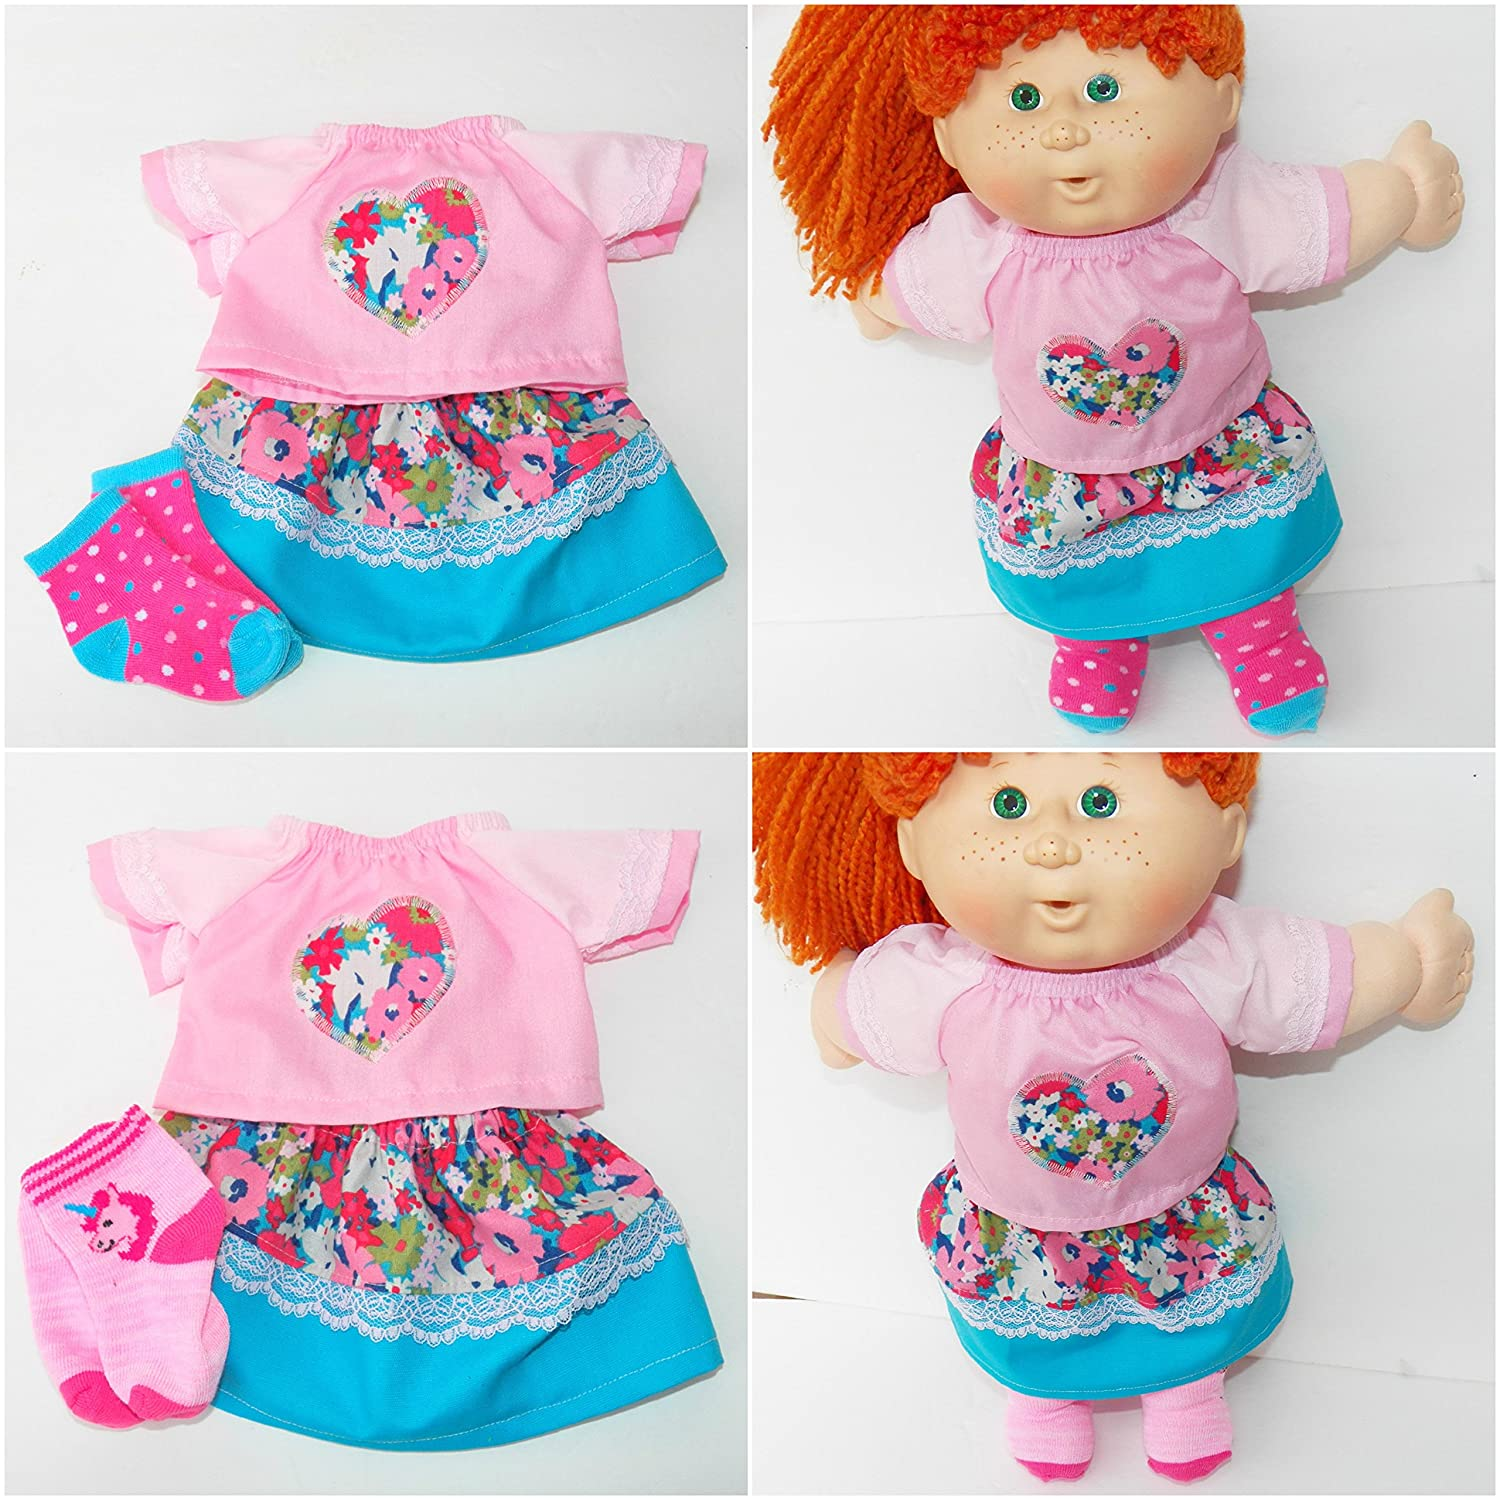 NEW SOCKS TO FIT THE MY CHILD /& CABBAGE PATCH DOLL ADDITIONAL PAIRS SHIP FREE